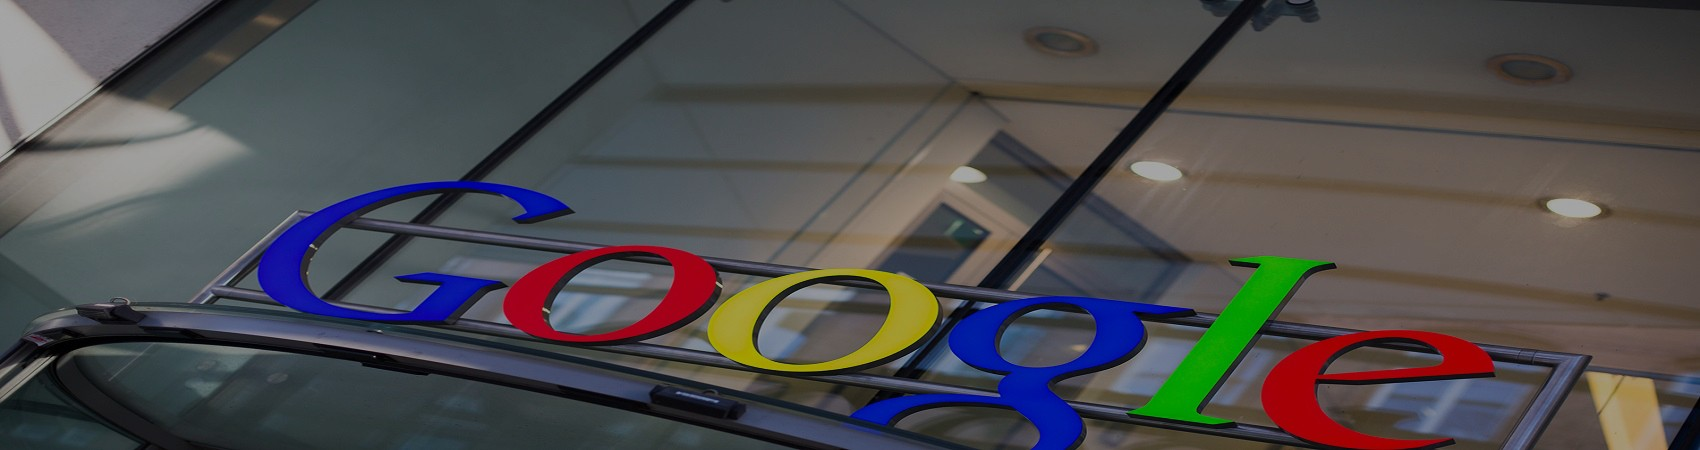 Our Holdings on GOOGL: How We Played